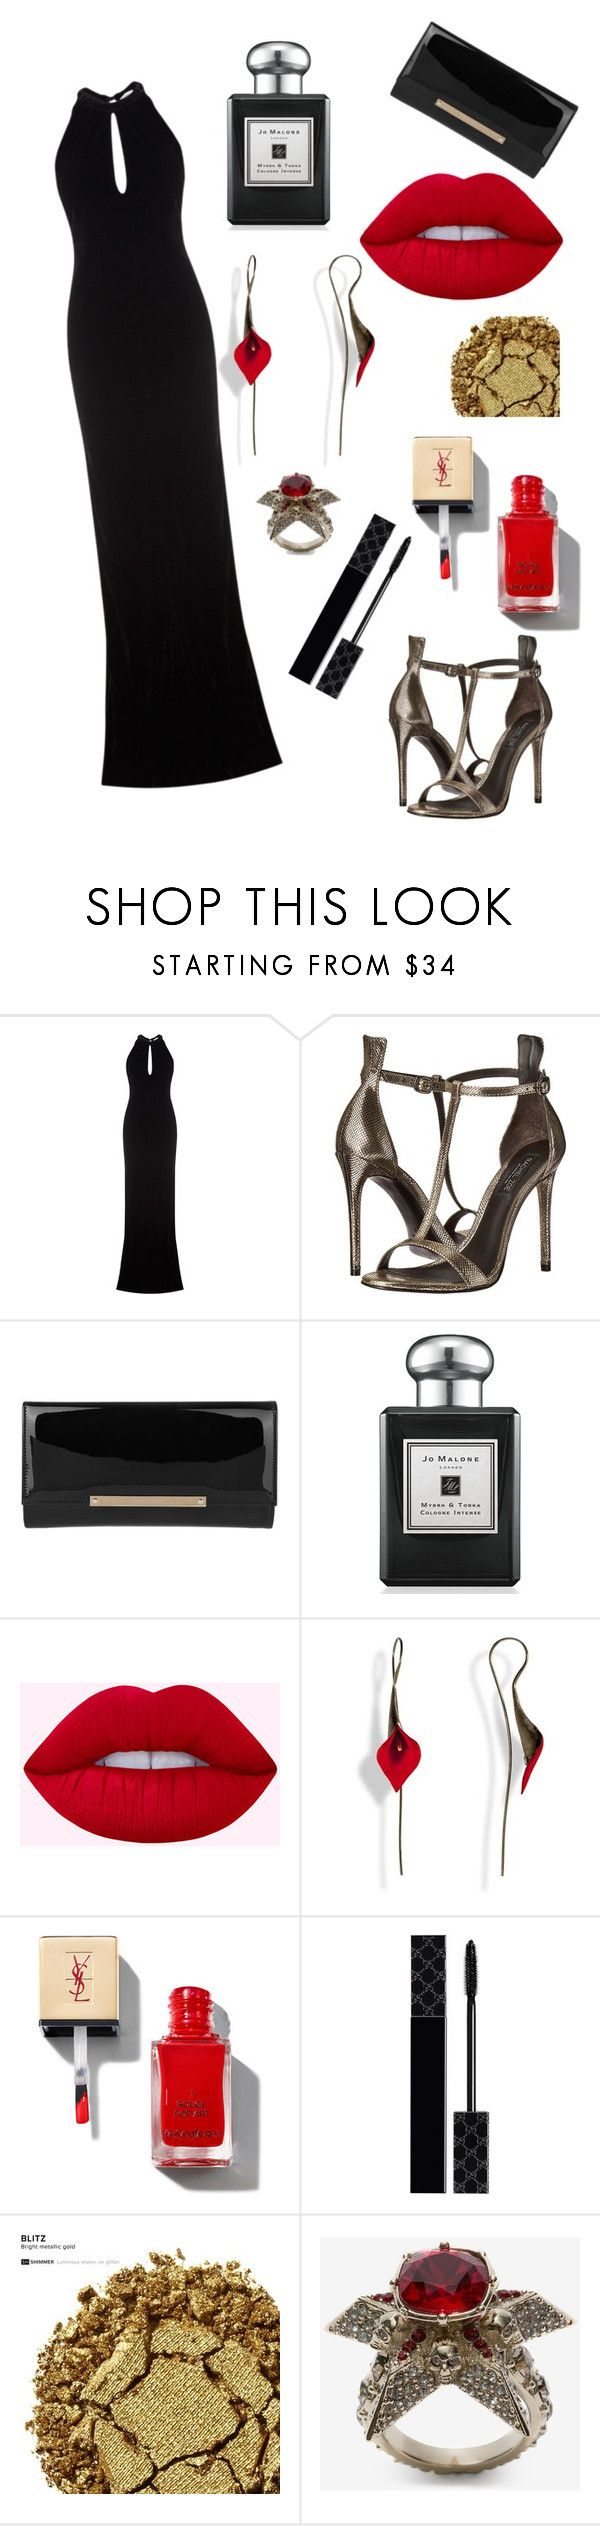 """""""Night Out"""" by annabellalovesfashion ❤ liked on Polyvore featuring Ghost, Rachel Zoe, Jimmy Choo, Jo Malone, Gucci, Urban Decay and Alexander McQueen"""